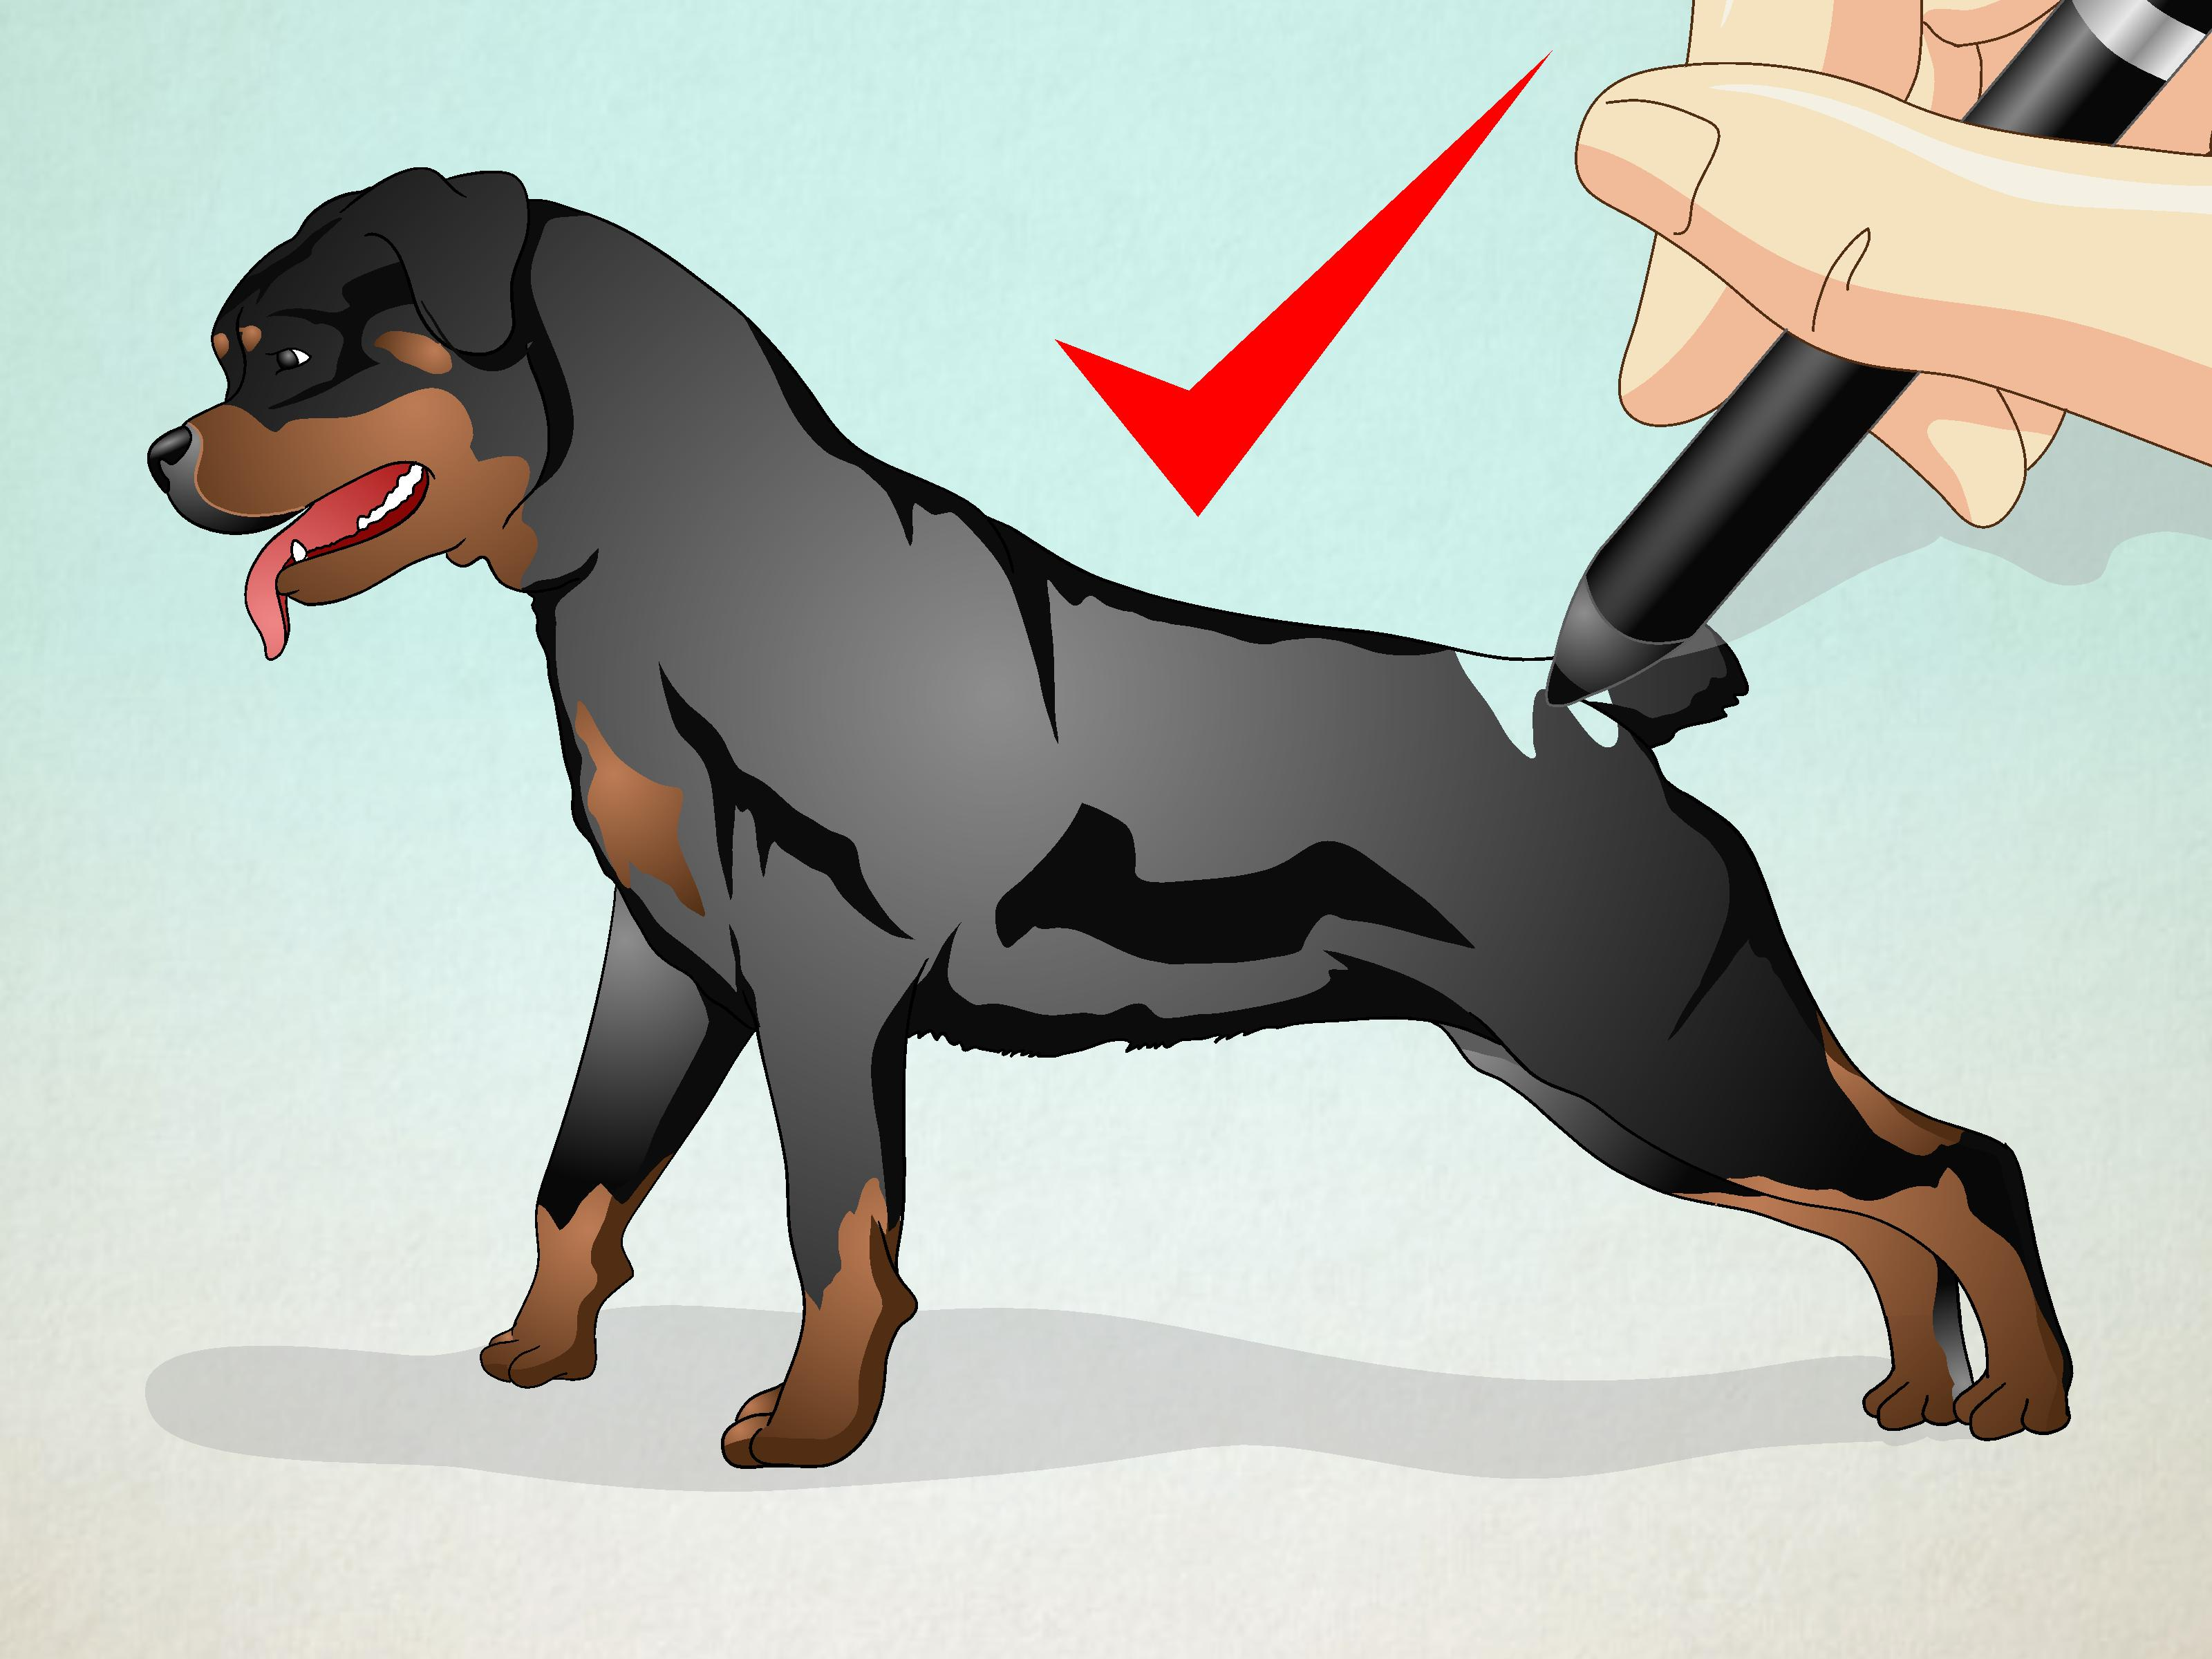 Drawn puppy real dog WikiHow to Dog:  Pictures)